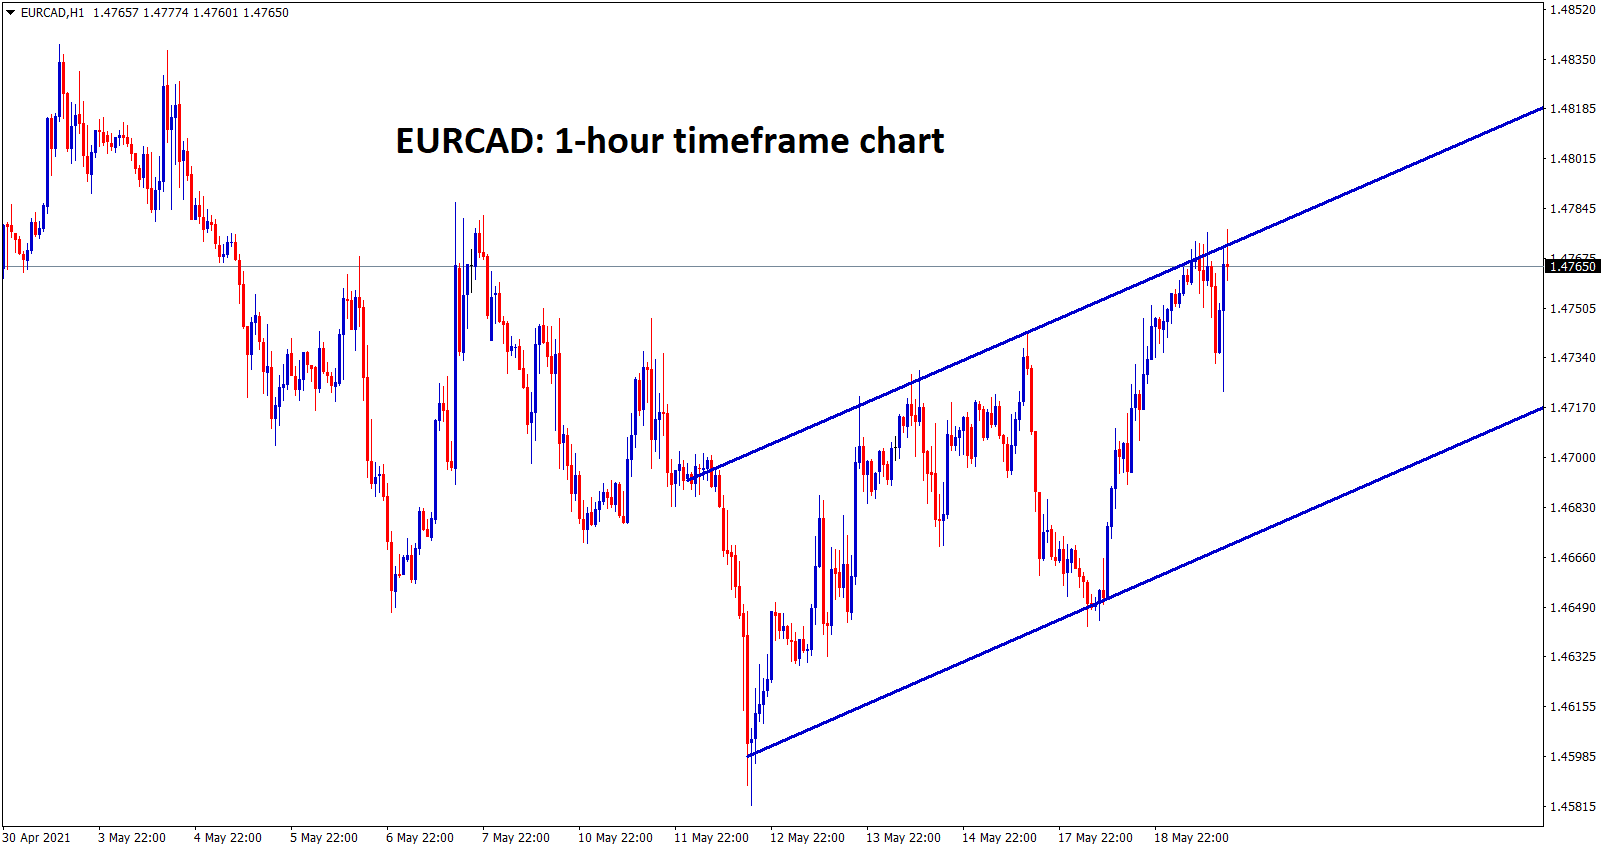 EURCAD is moving in an Ascending channel in 1hr